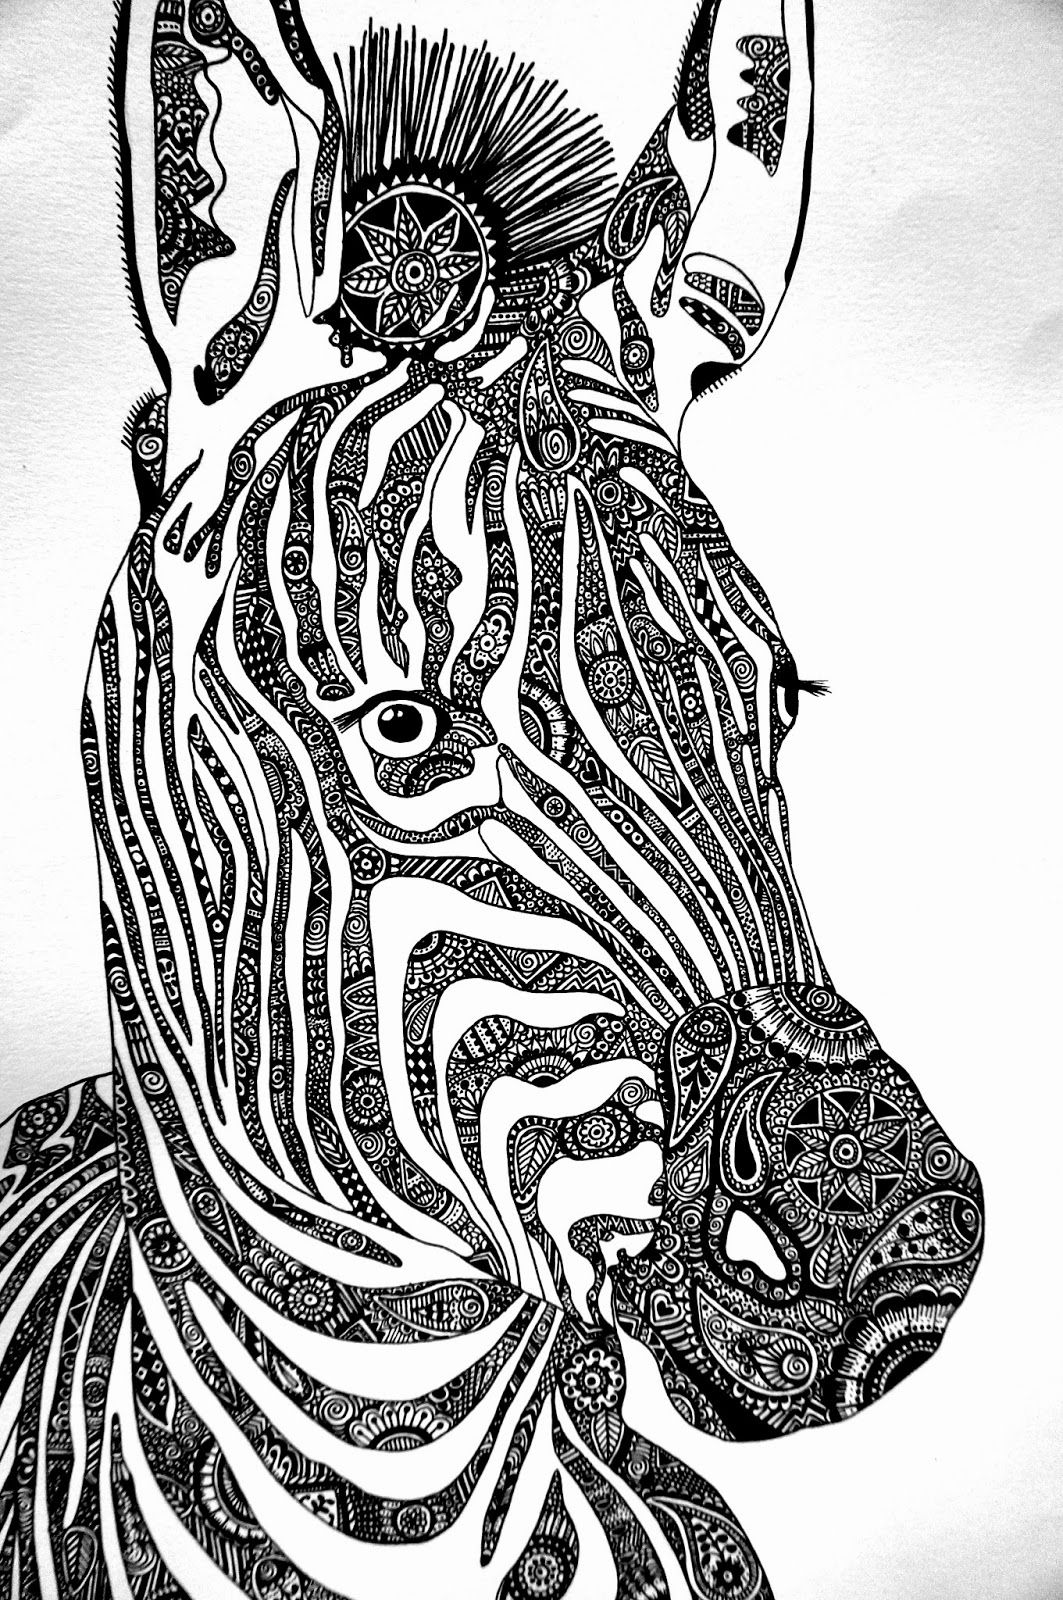 Pin By Robochase6000 On Random Zebra Art Zebra Drawing